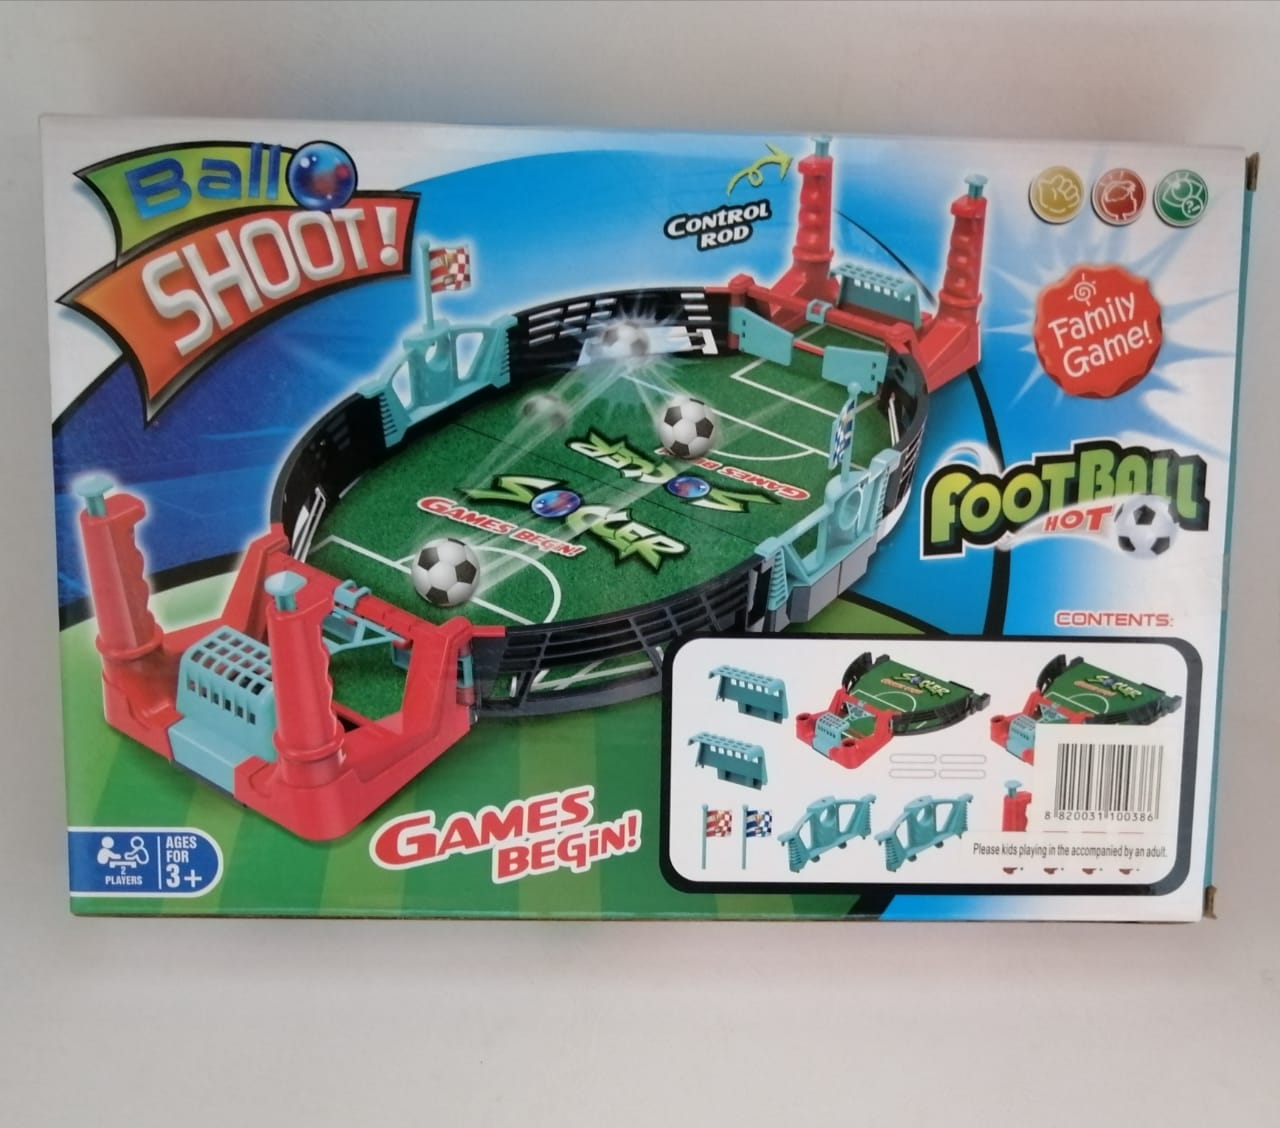 Table Top Football Hot Game